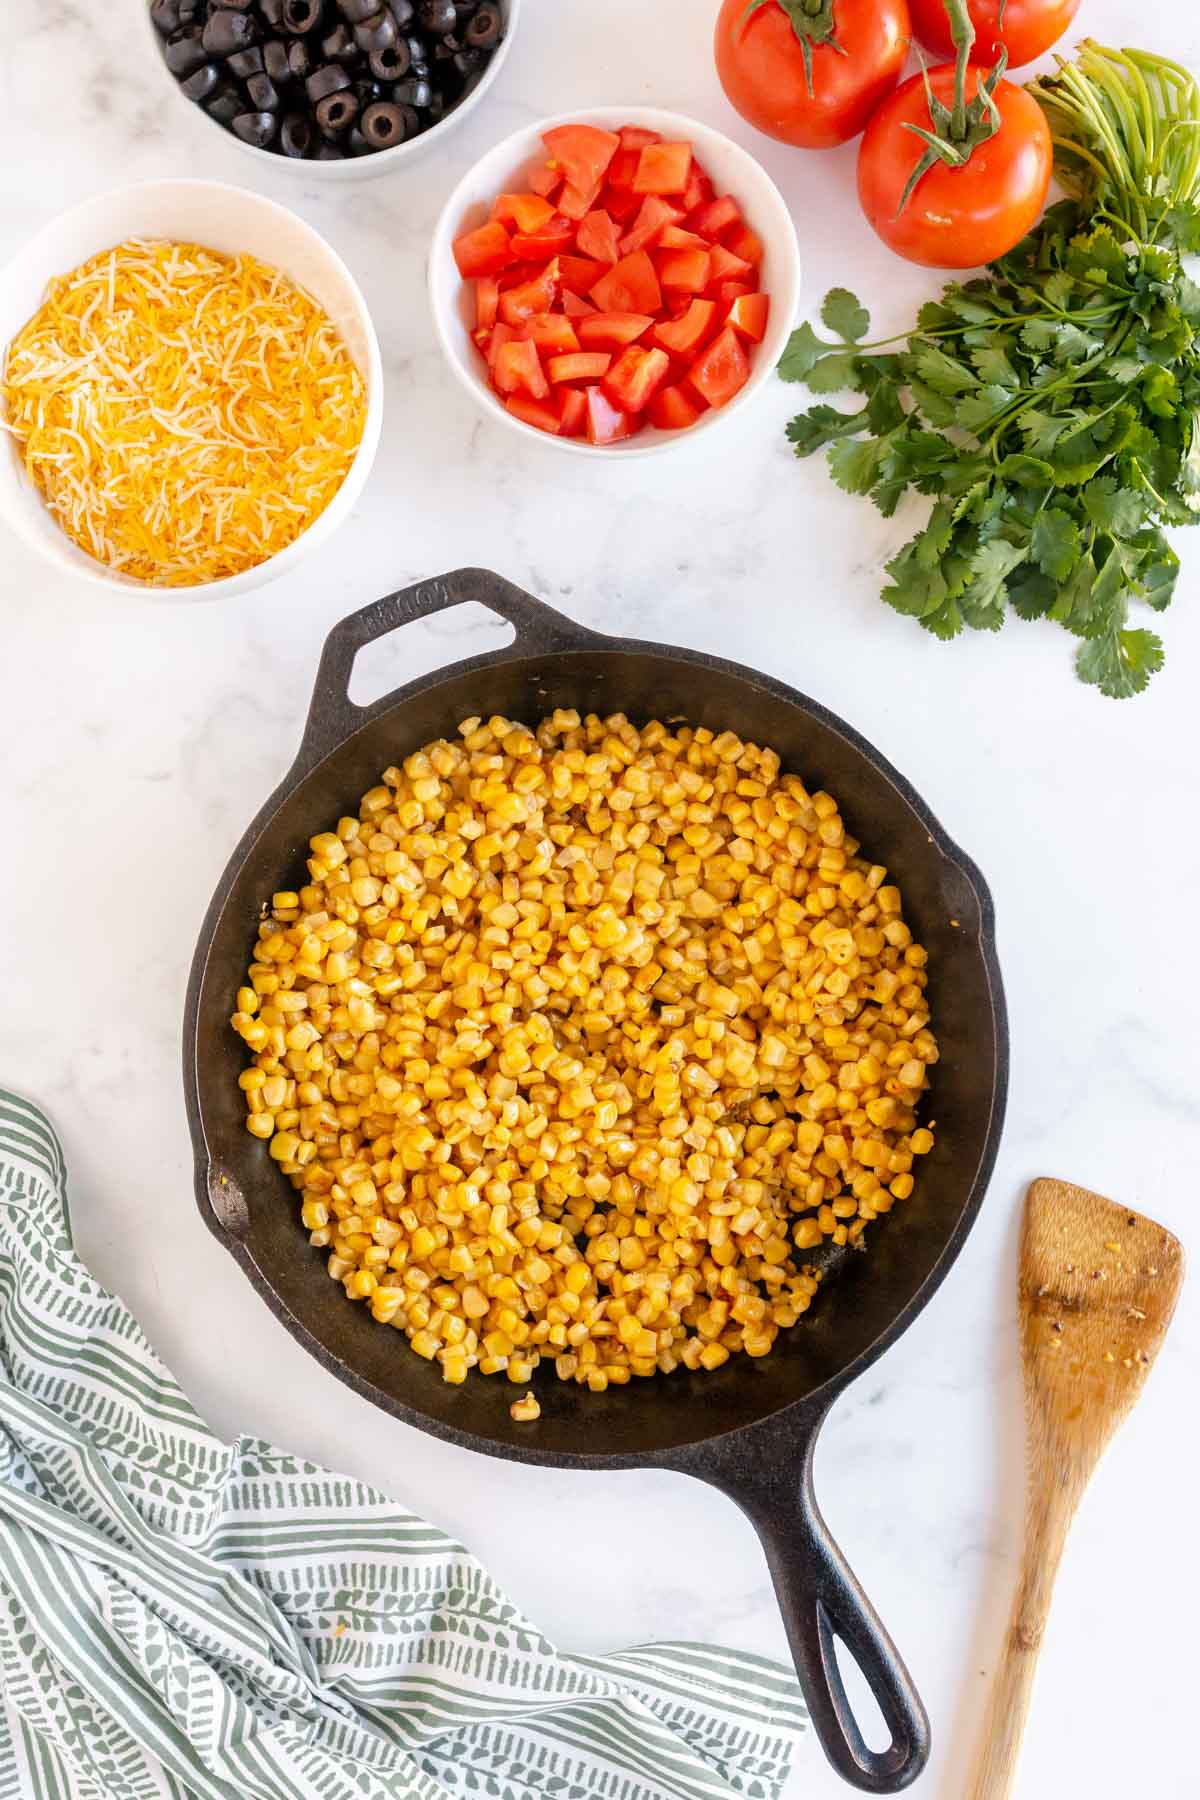 Caramelized corn in a pan